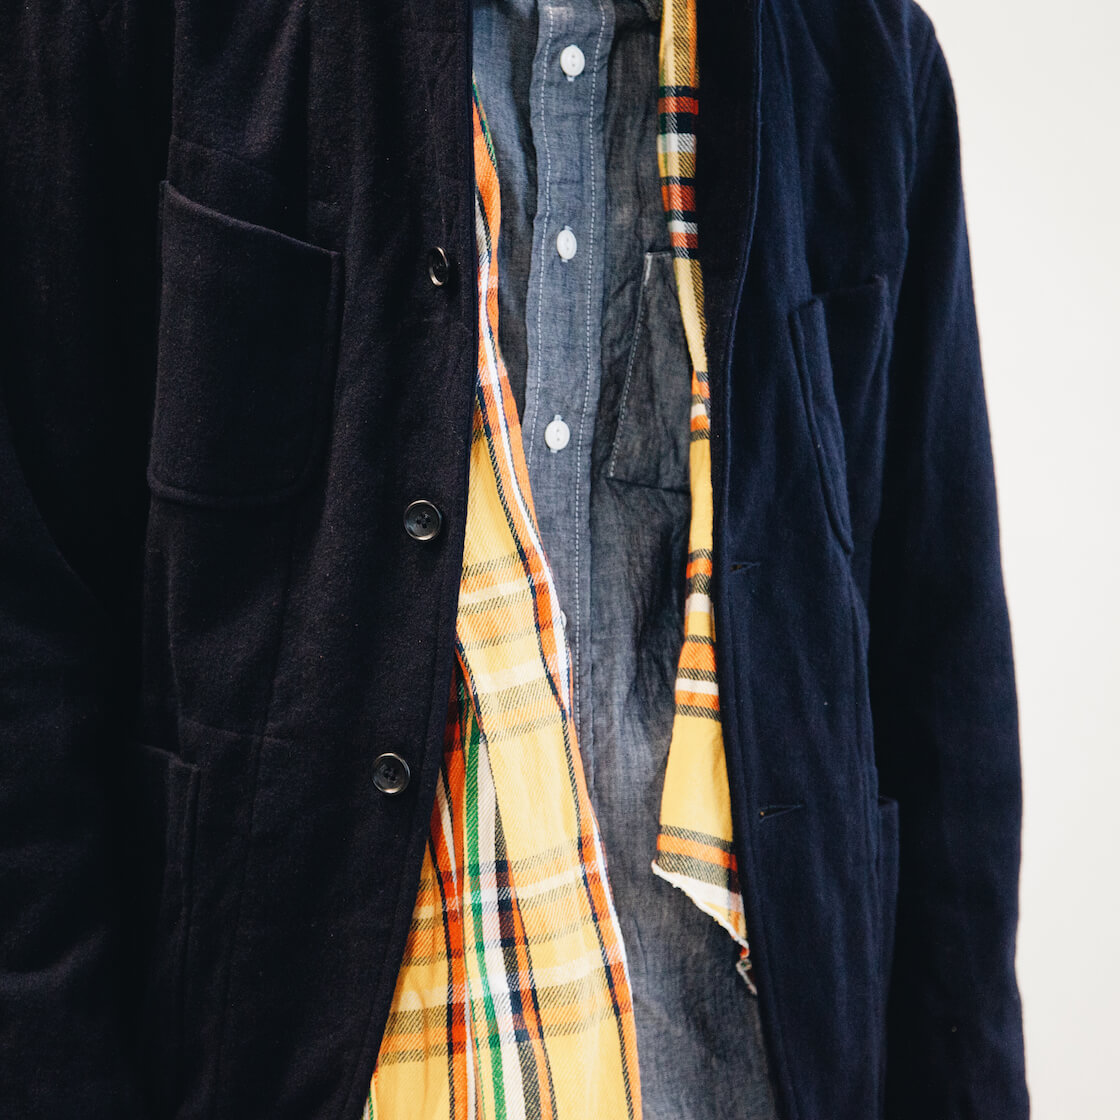 engineered garments new bedford jacket, long scarf, and work shirt on body